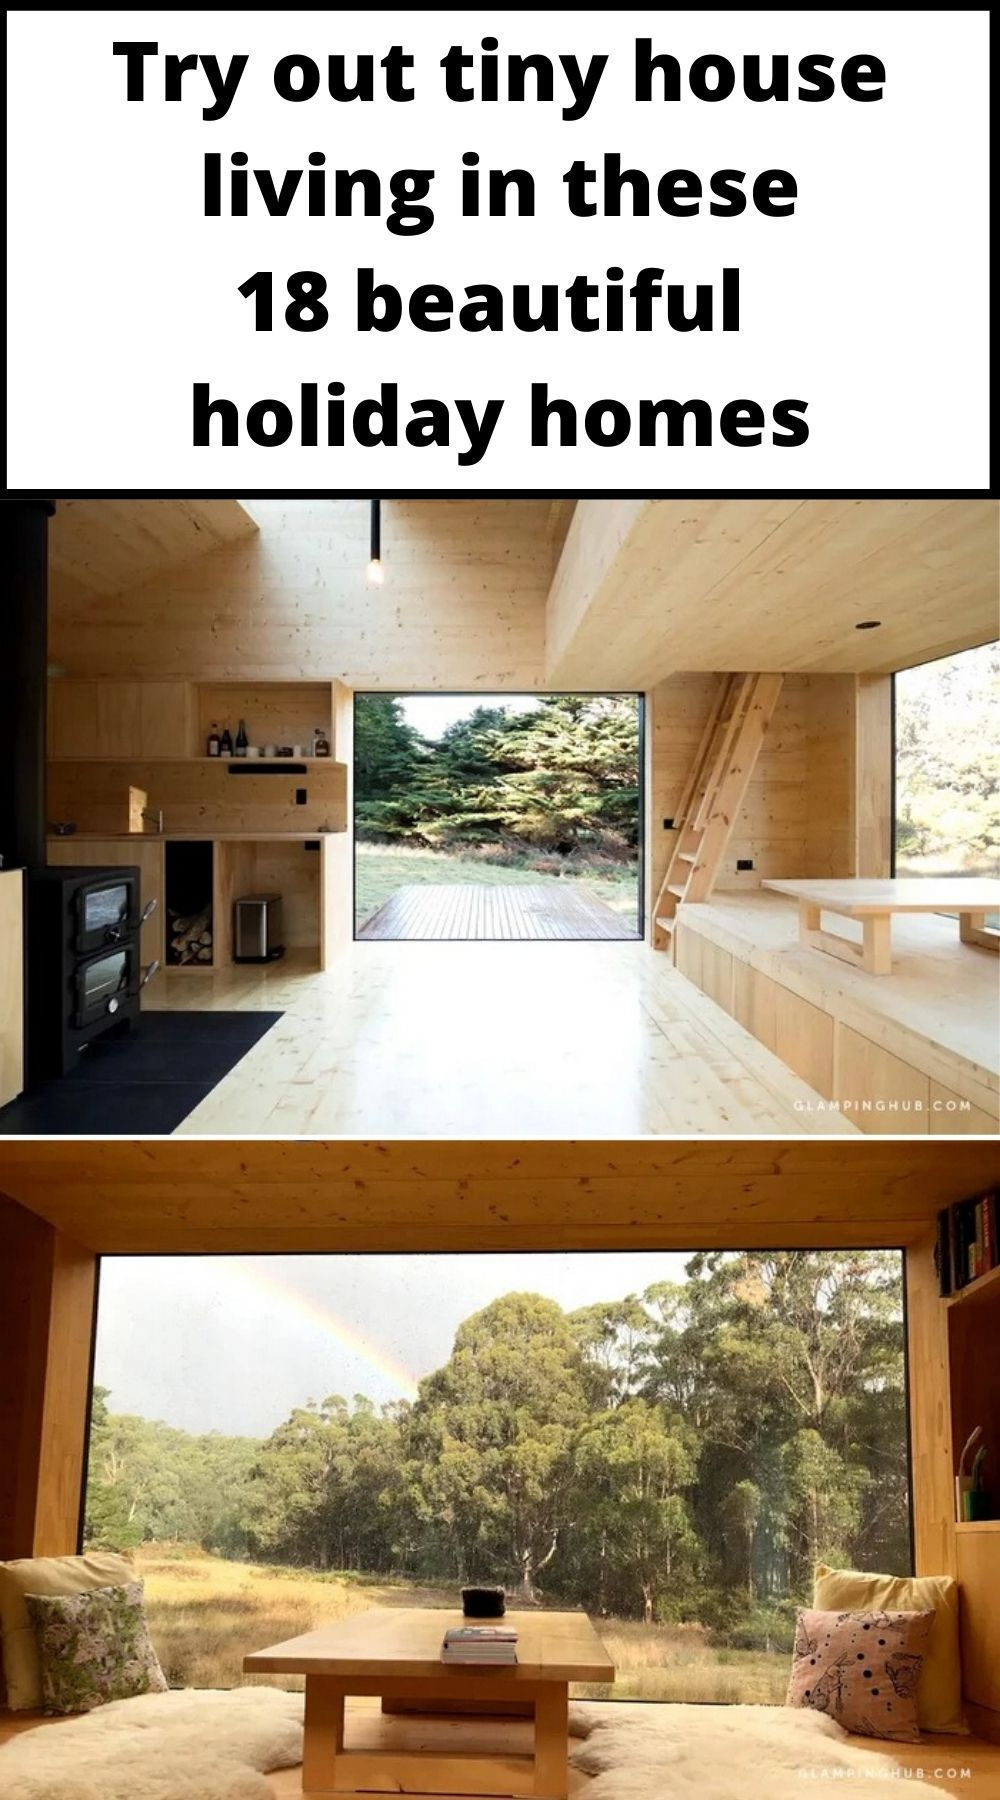 Try Out Tiny House Living In These 18 Beautiful Holiday Homes Living In A Shoebox In 2020 Tiny House Living Small Modern Cabin Tiny House Trailer